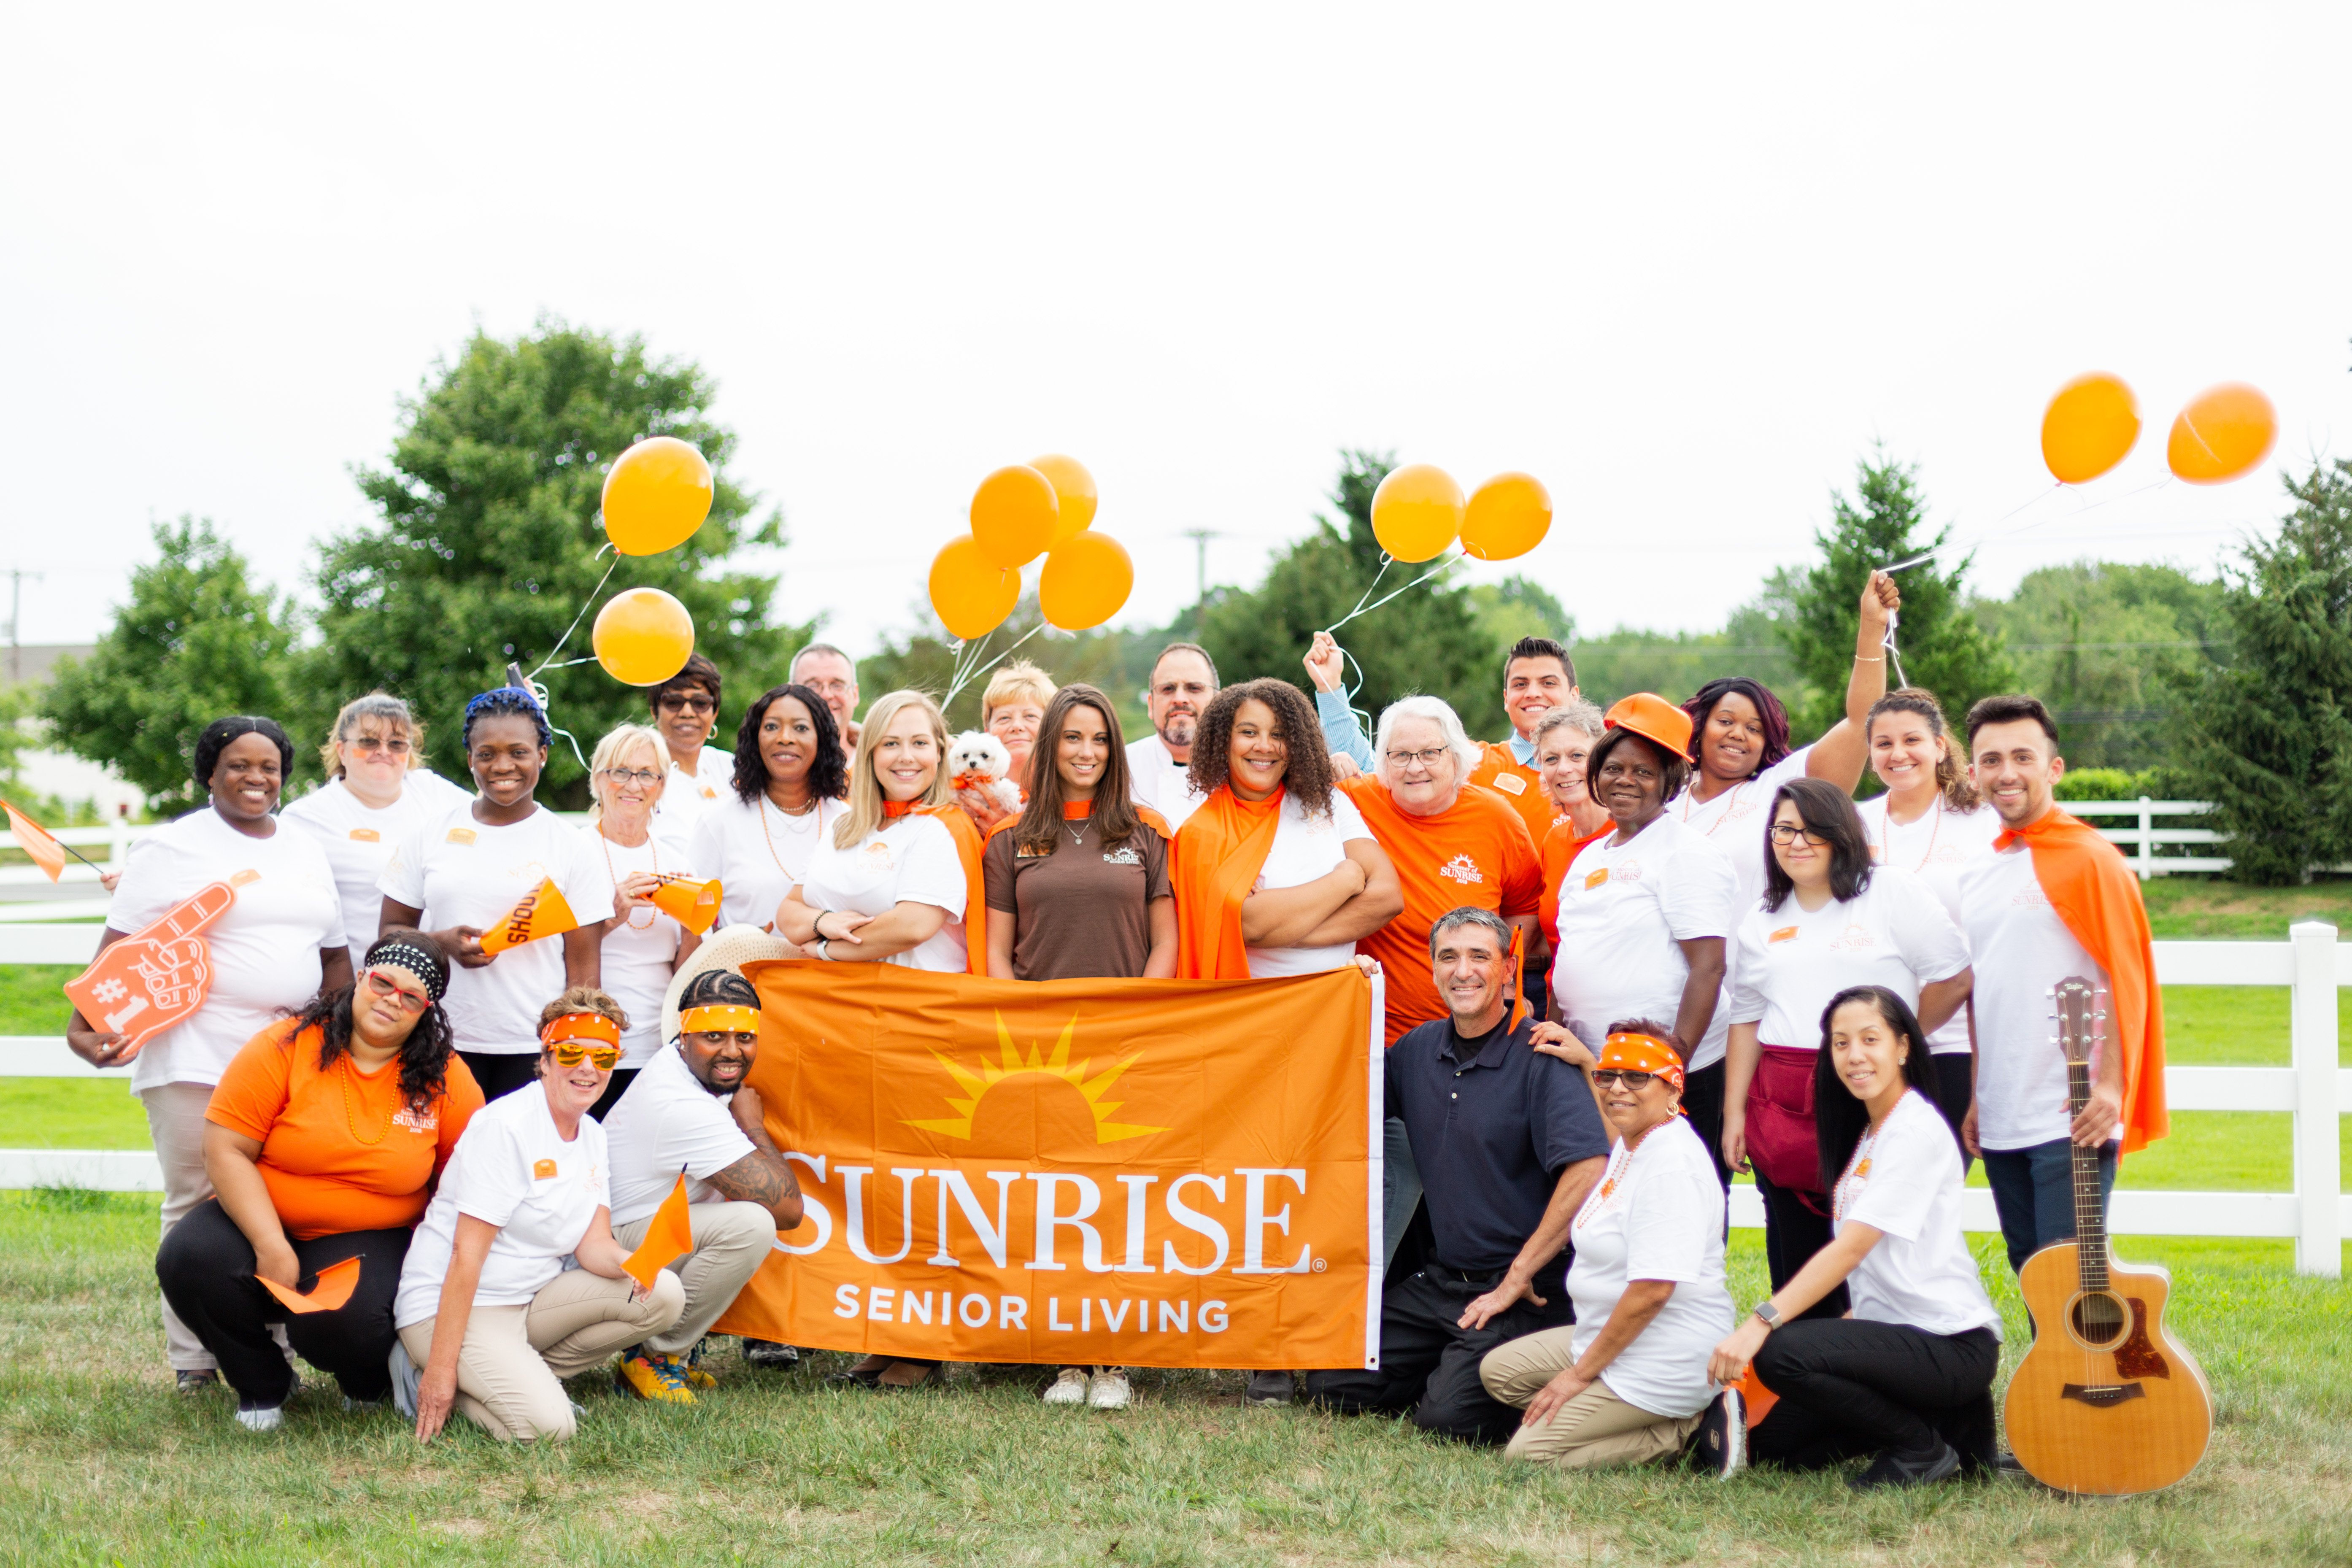 Great Place to Work® and Fortune Rank Sunrise among Best Workplaces in Aging Services for Second Consecutive Year